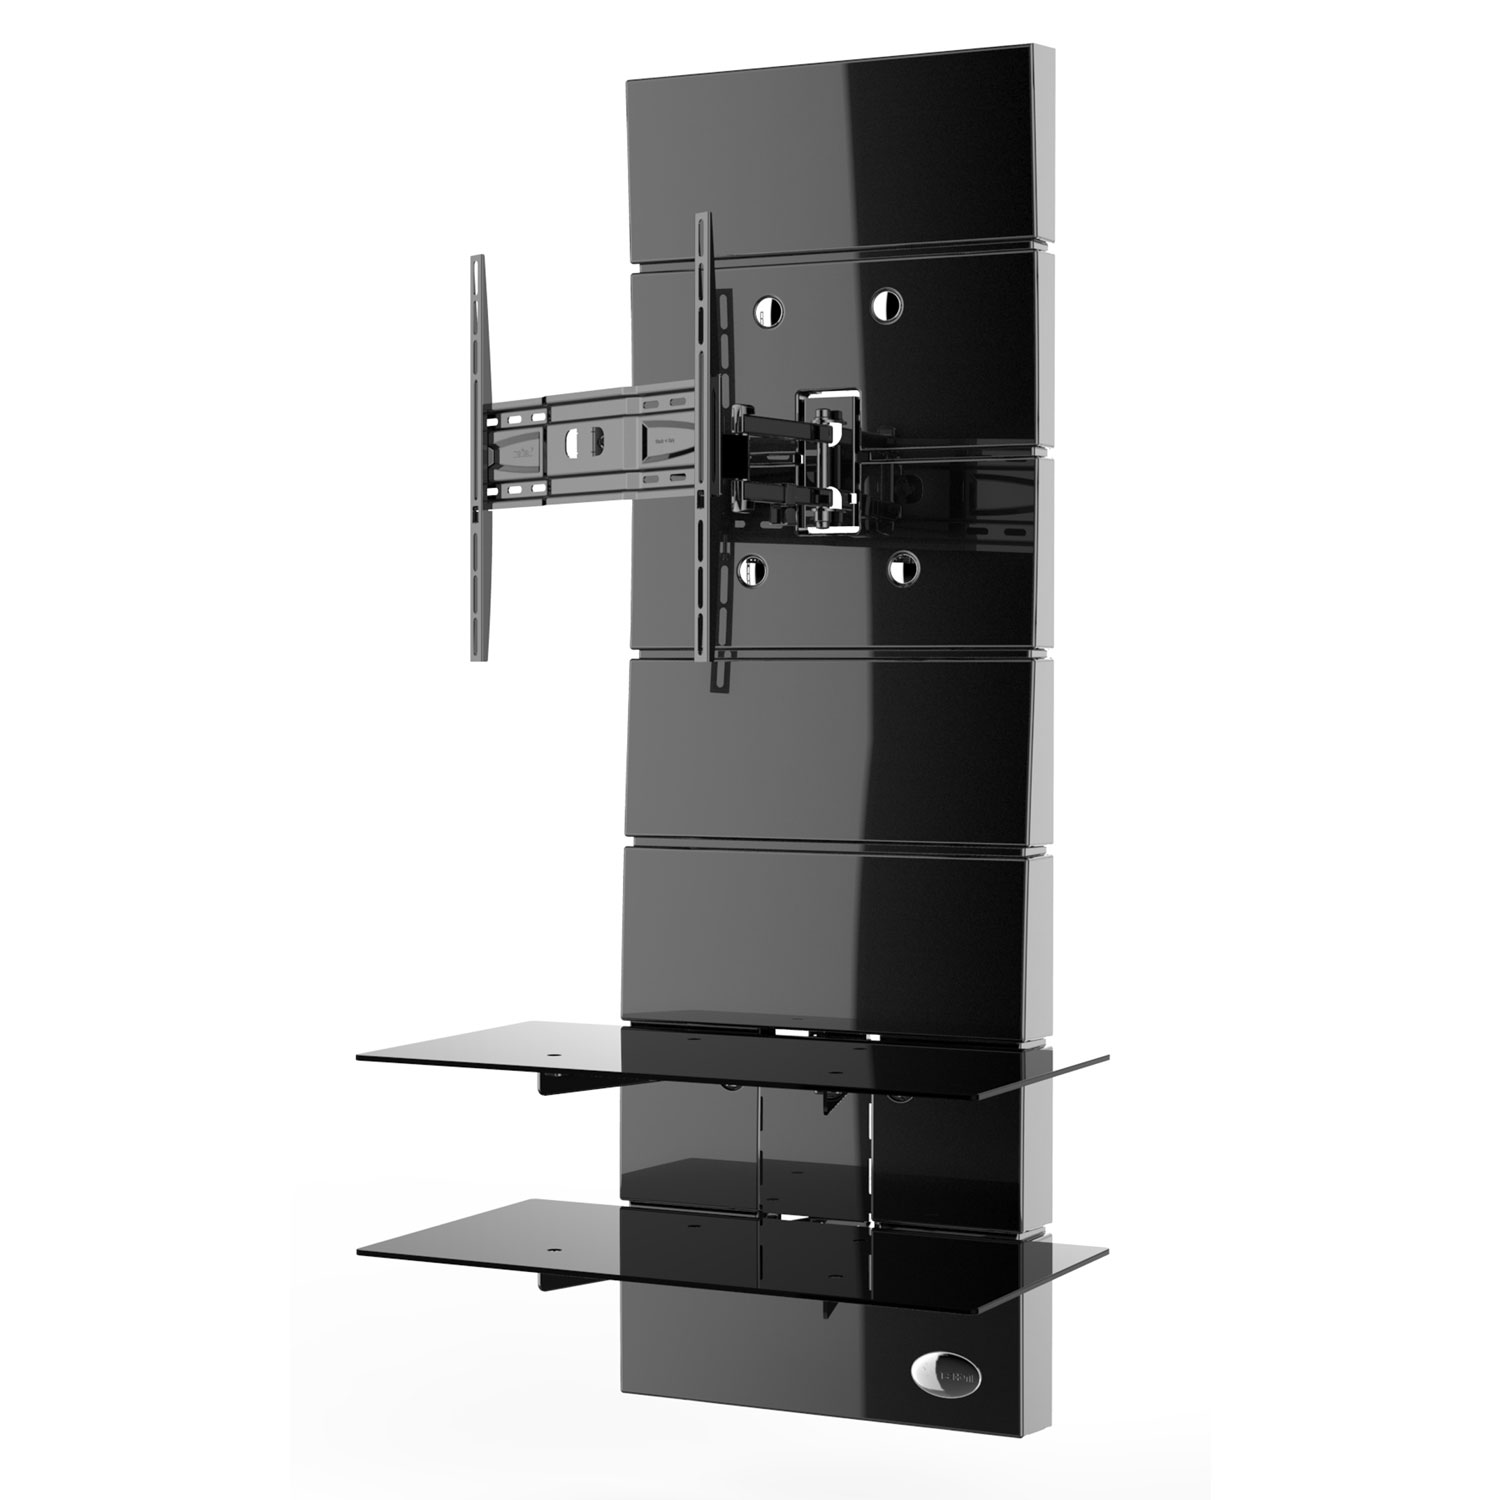 Meuble Tv Avec Support Orientable - Meliconi Ghost Design 3000 Rotation Noir Meuble Tv Meliconi Sur [mjhdah]http://media.ldlc.com/ld/products/00/01/04/22/LD0001042253_2.jpg